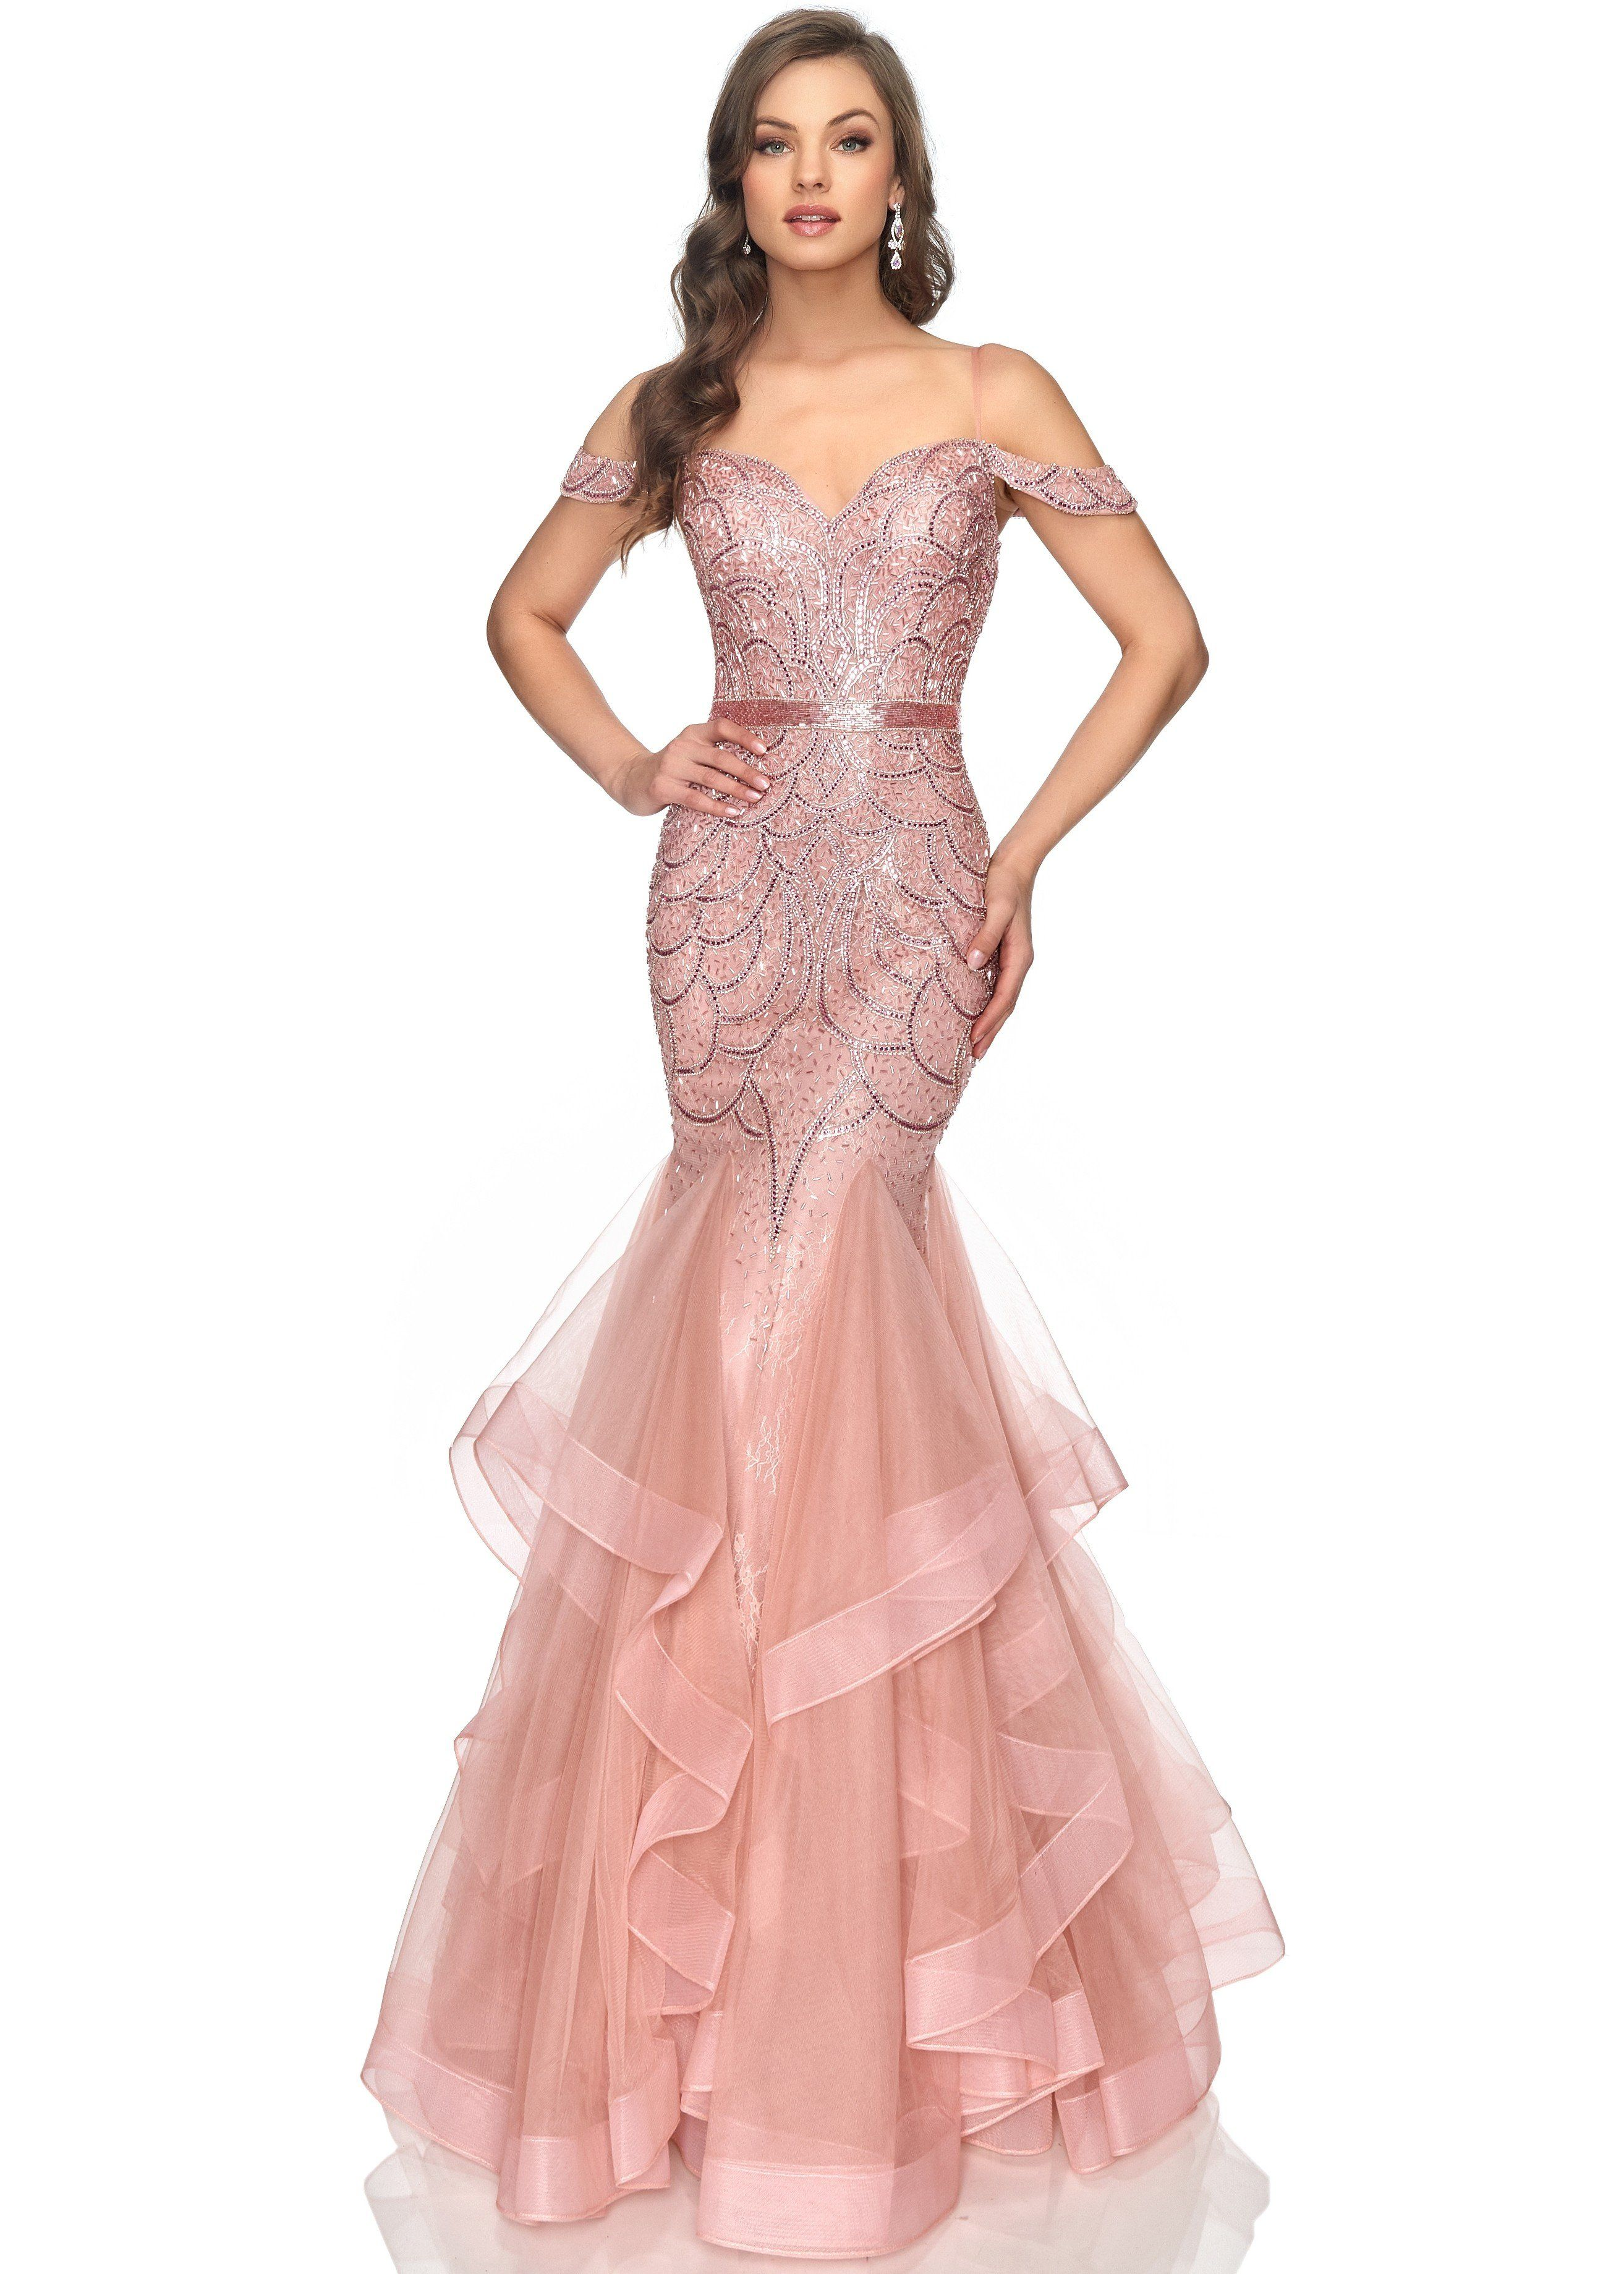 Lucci Lu 2147 Rose Gold Beaded and Tulle Mermaid Gown | Pageant